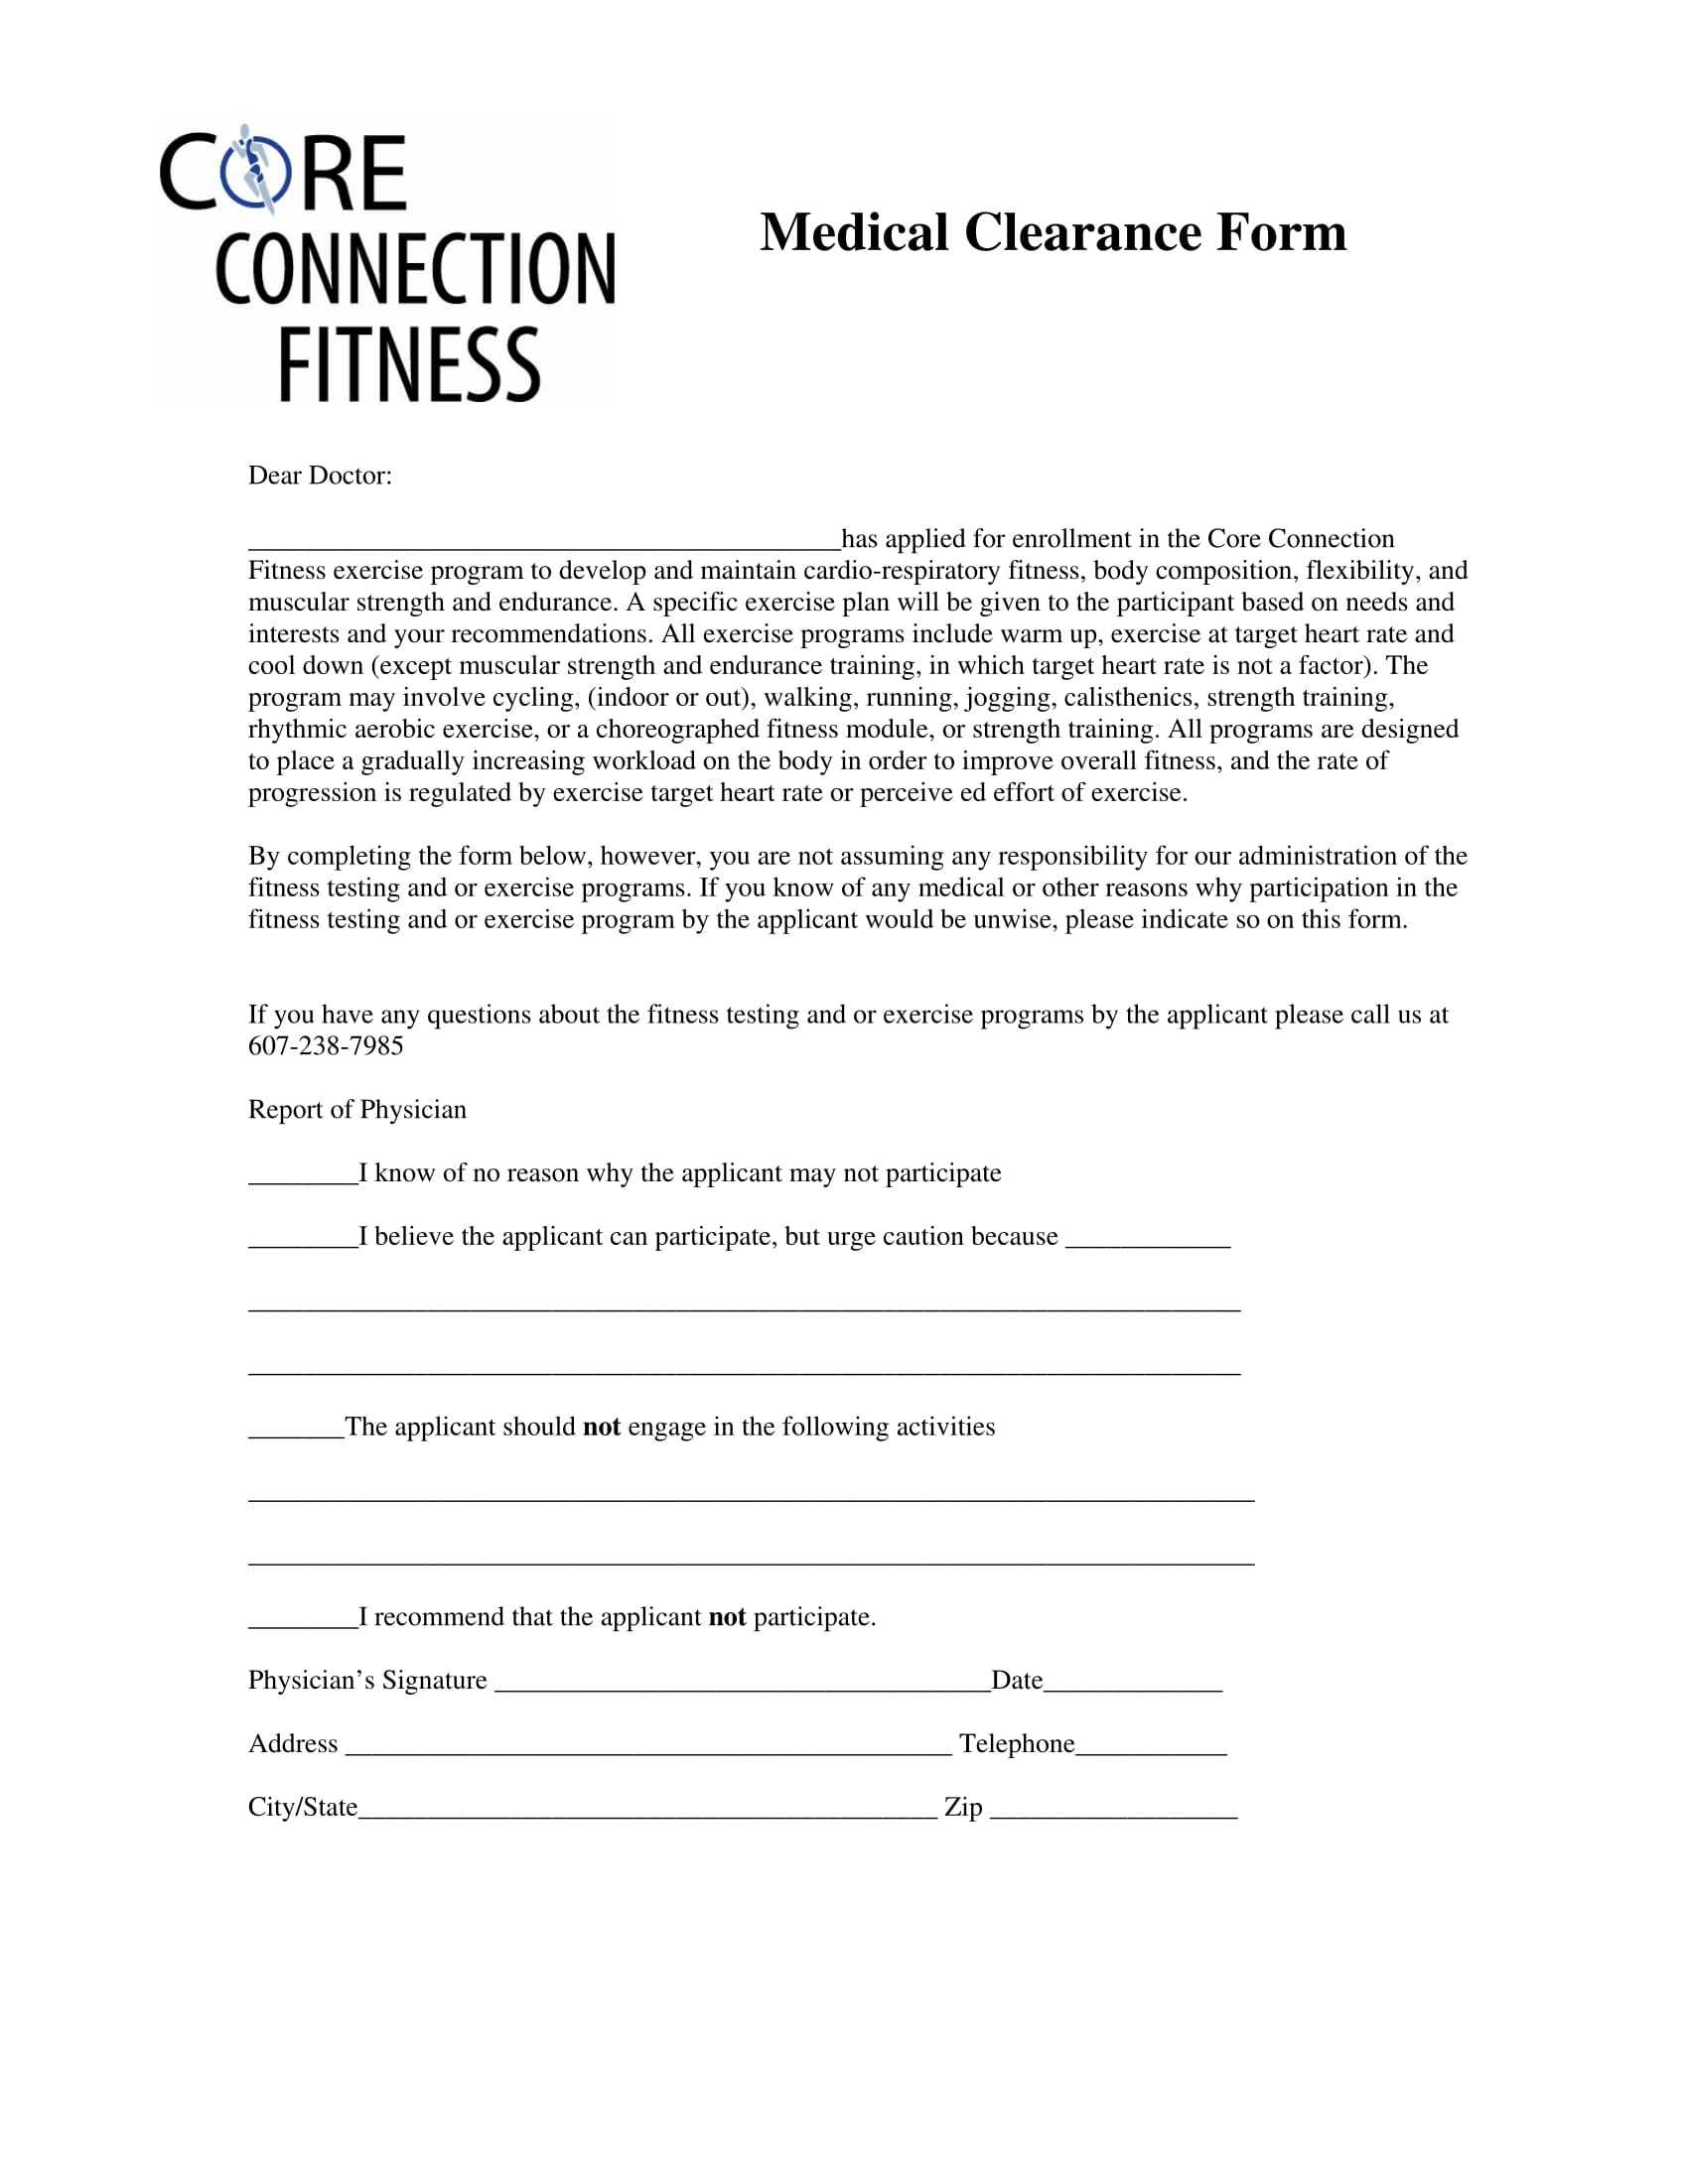 fitness medical clearance form 1